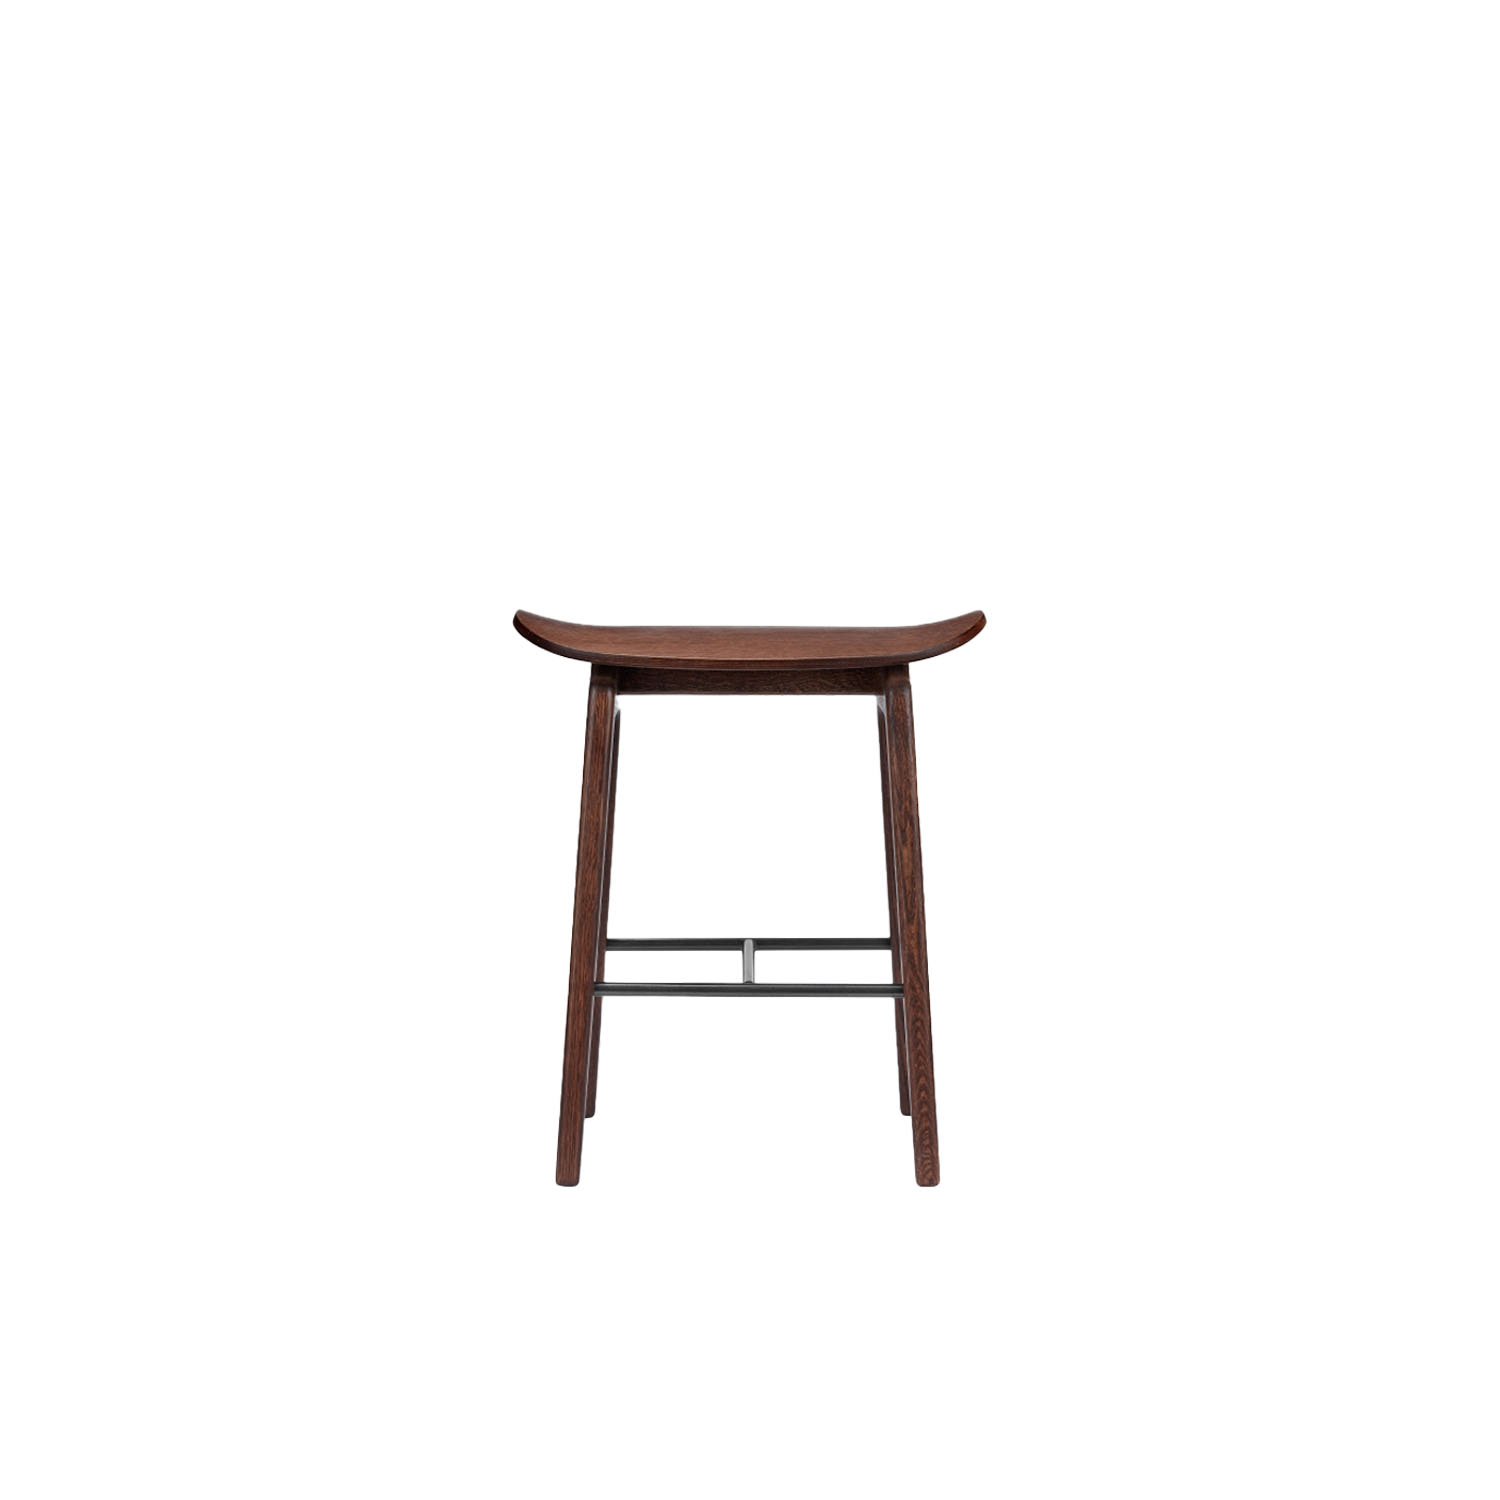 NY11 Stool - The NY11 Bar Stool has a frame hand-crafted from solid white oak and a seat of laminated oak veneer. The seat can be upholstered with a various selection of both leather & fabrics. The NY11 series is inspired by traditional Danish school chairs designed throughout the twentieth century. | Matter of Stuff